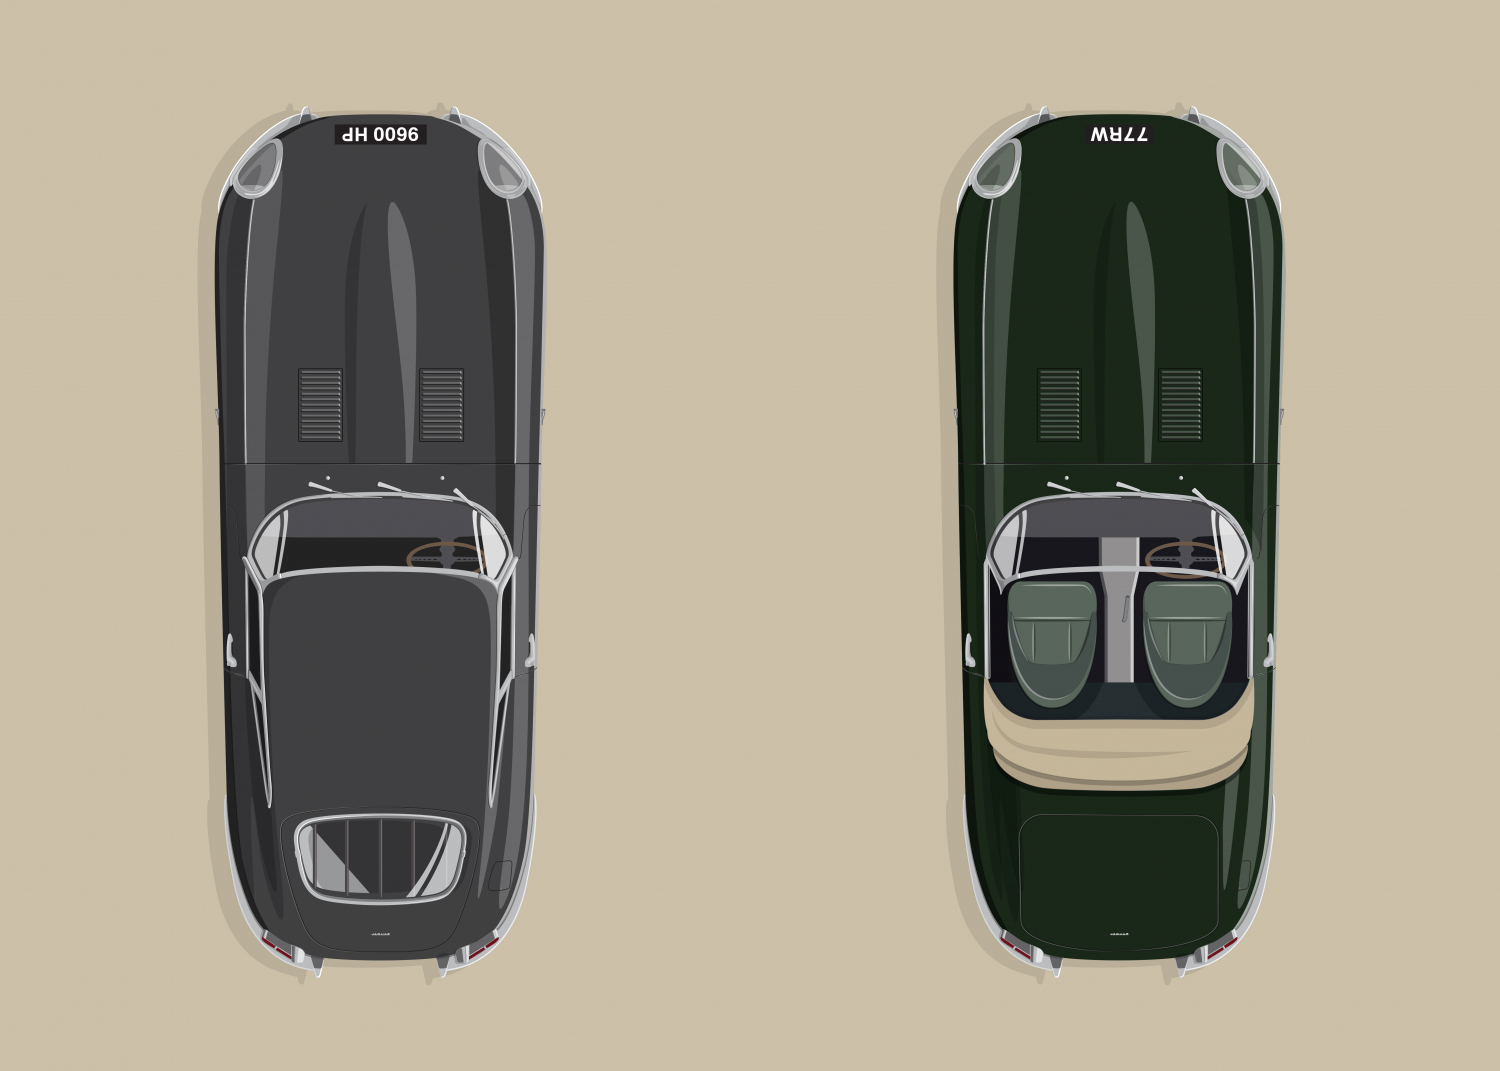 Jaguar Classic will Celebrate 60 Years of E-type in 2021 with Anniversary Tribute Edition - Image 1